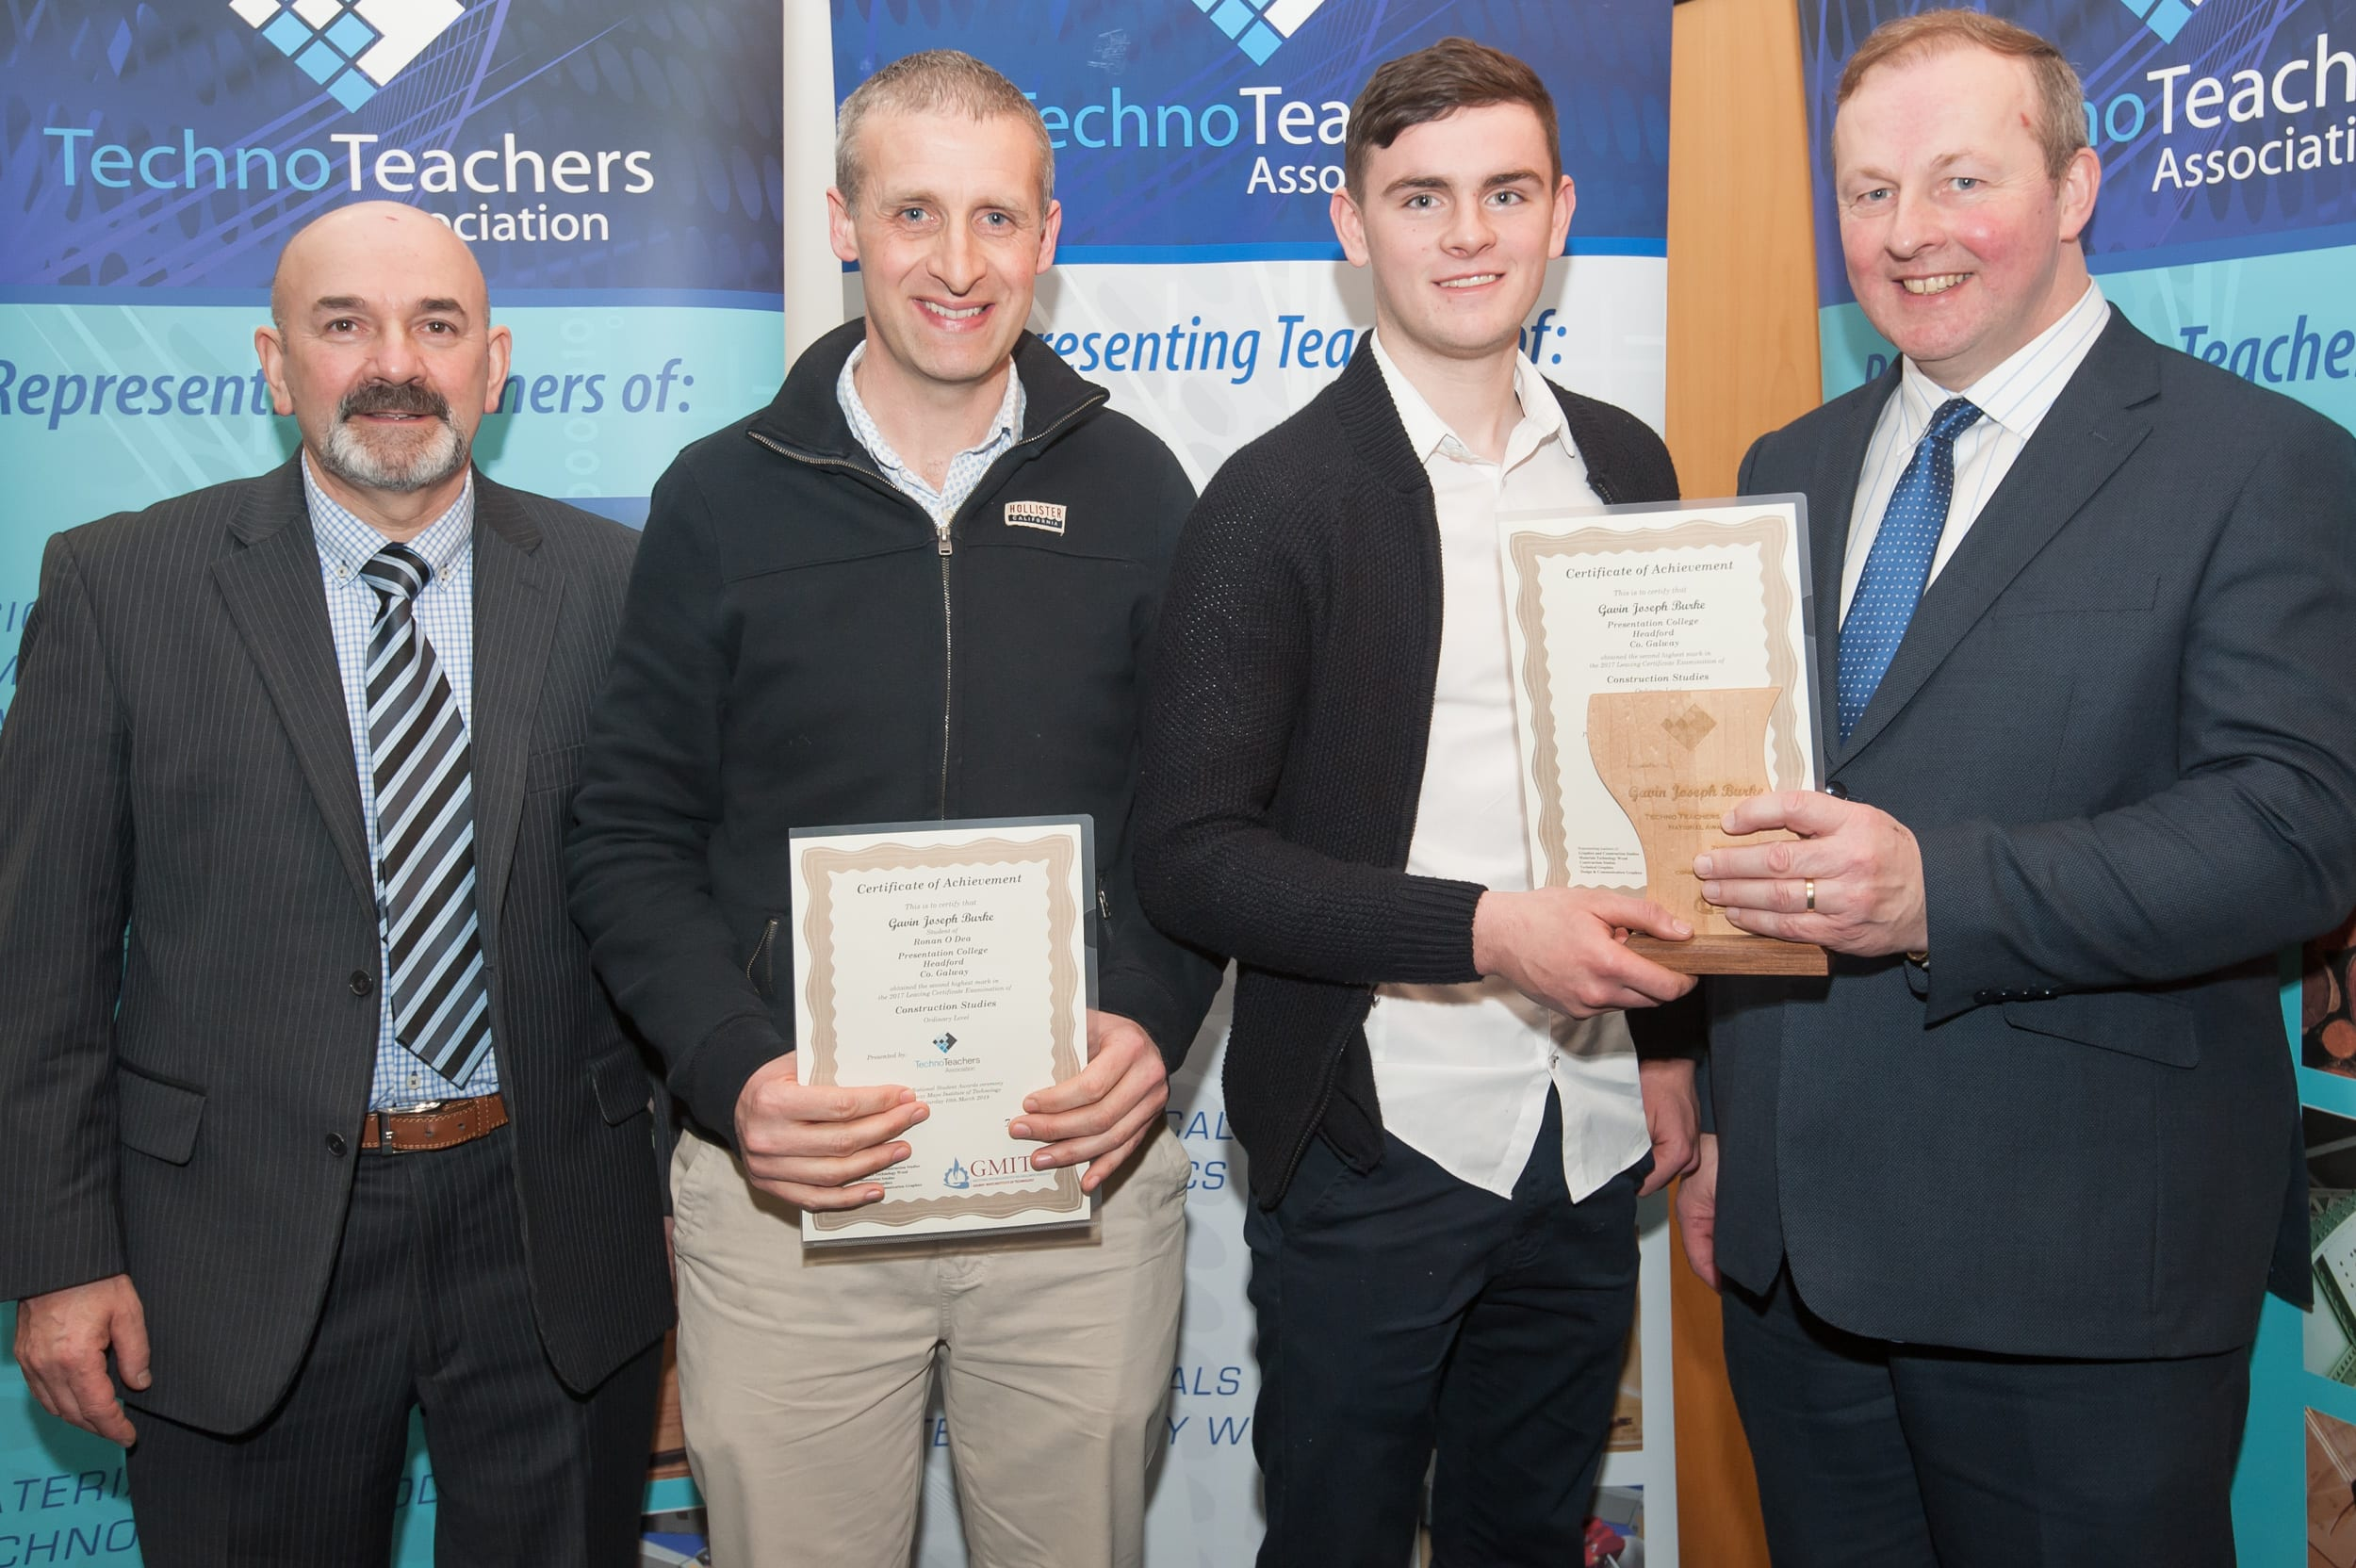 PCH student wins 2nd place overall in Leaving Certificate